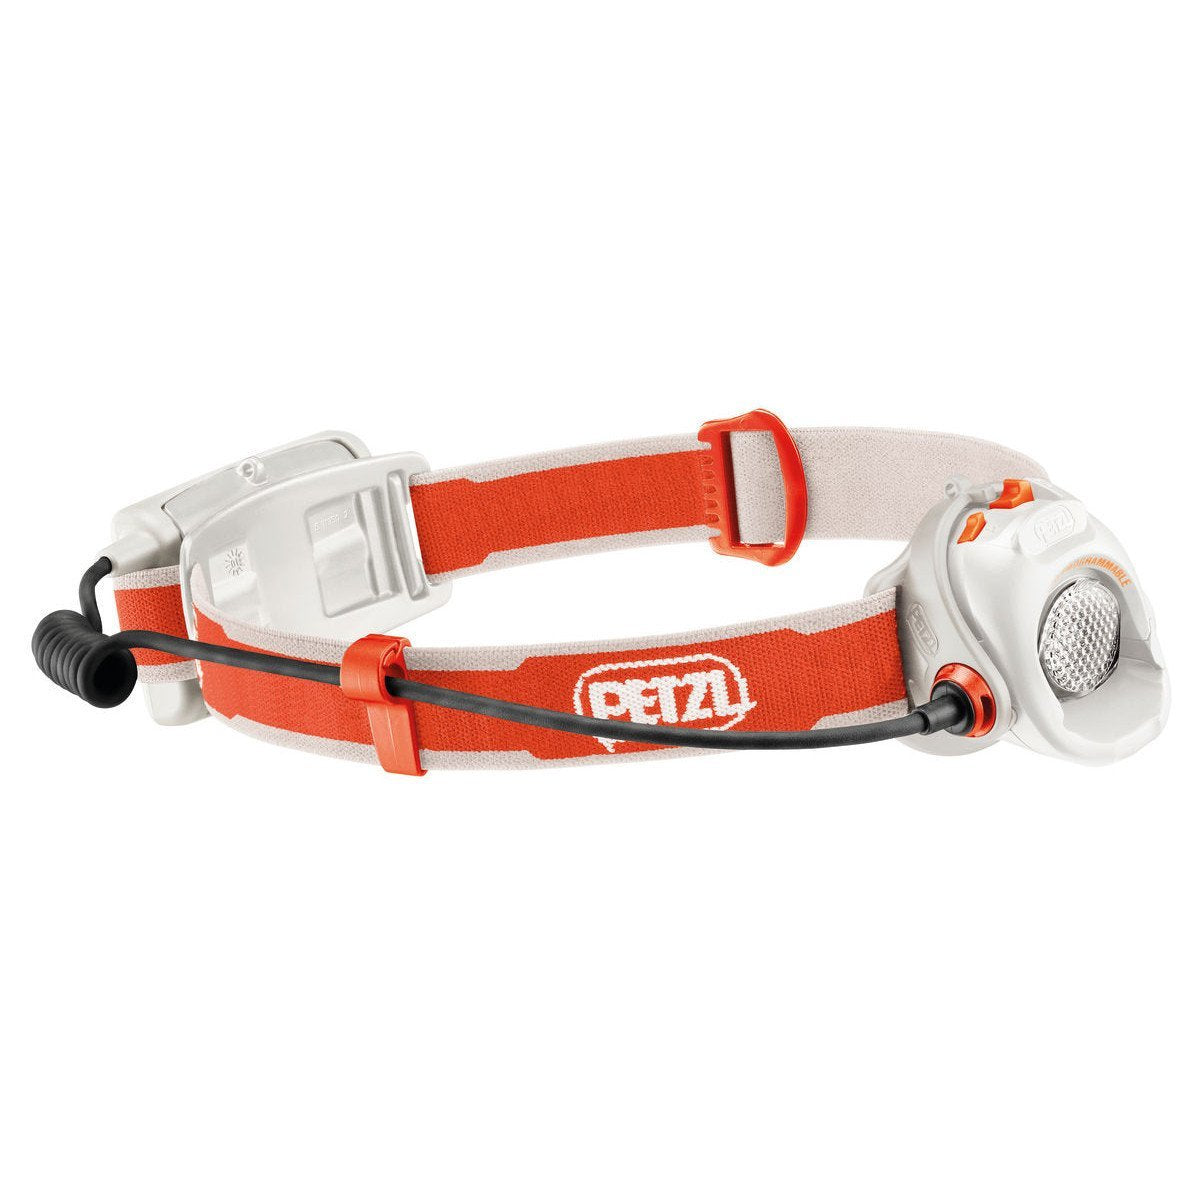 Petzl Myo Head torch, side view in white and orange colours